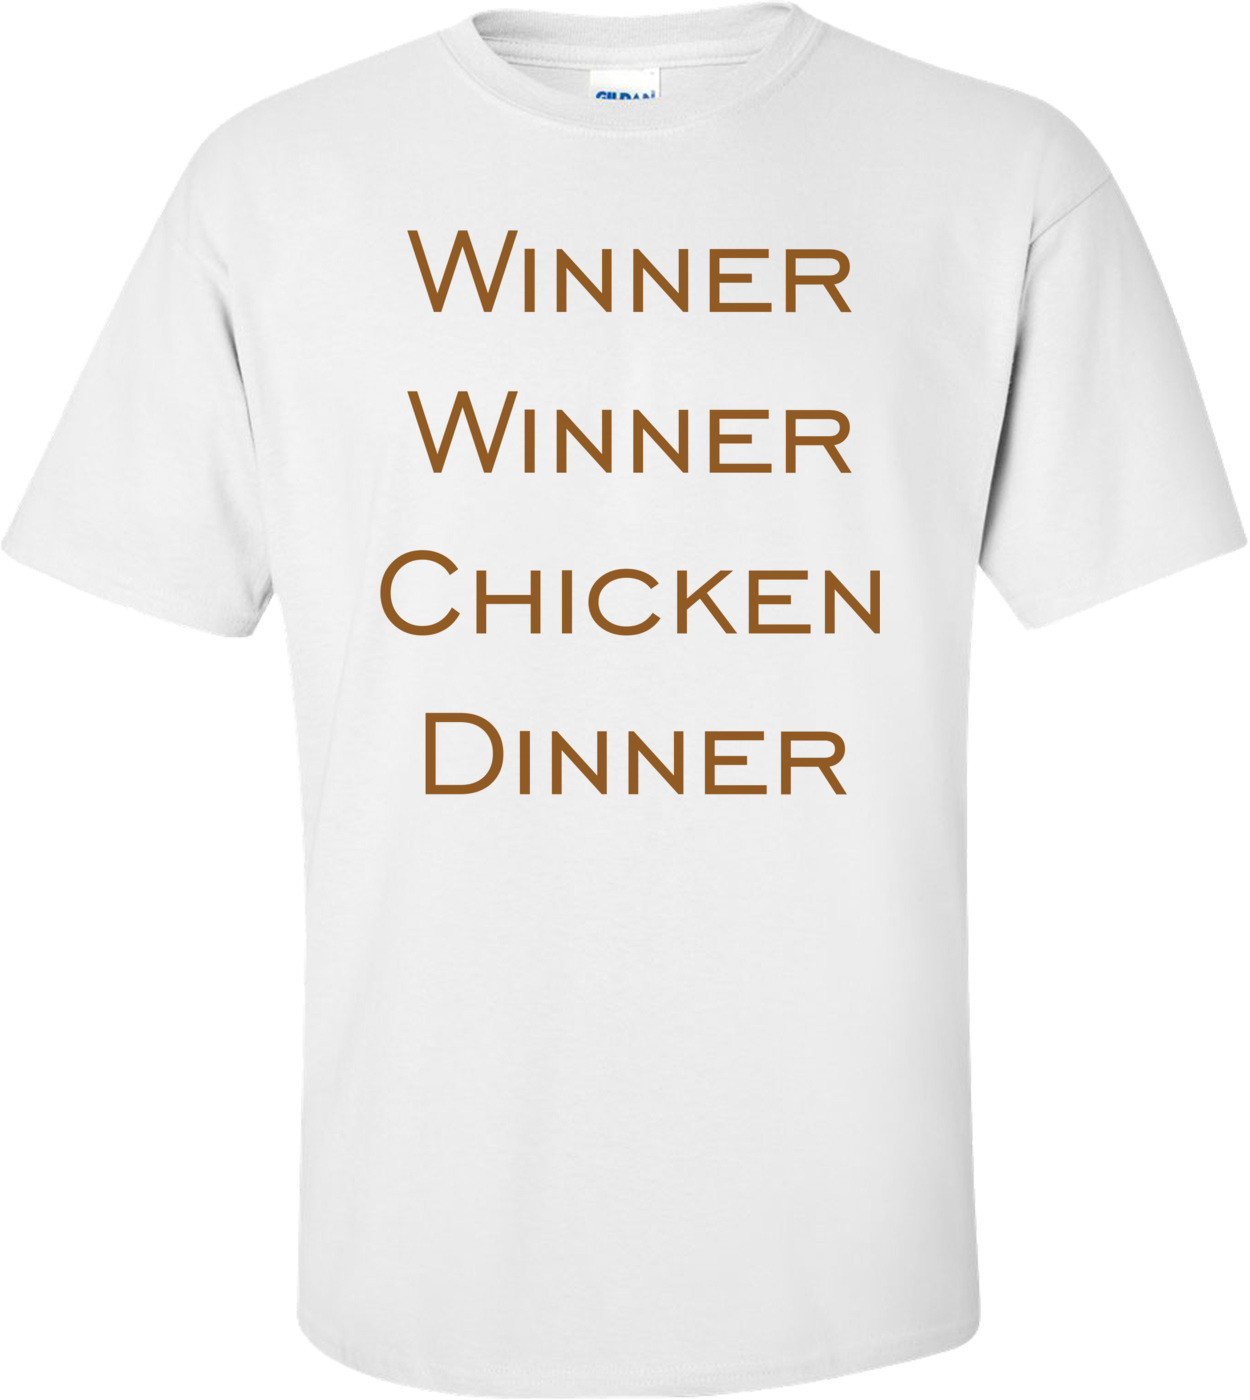 Winner Winner Chicken Dinner Shirt